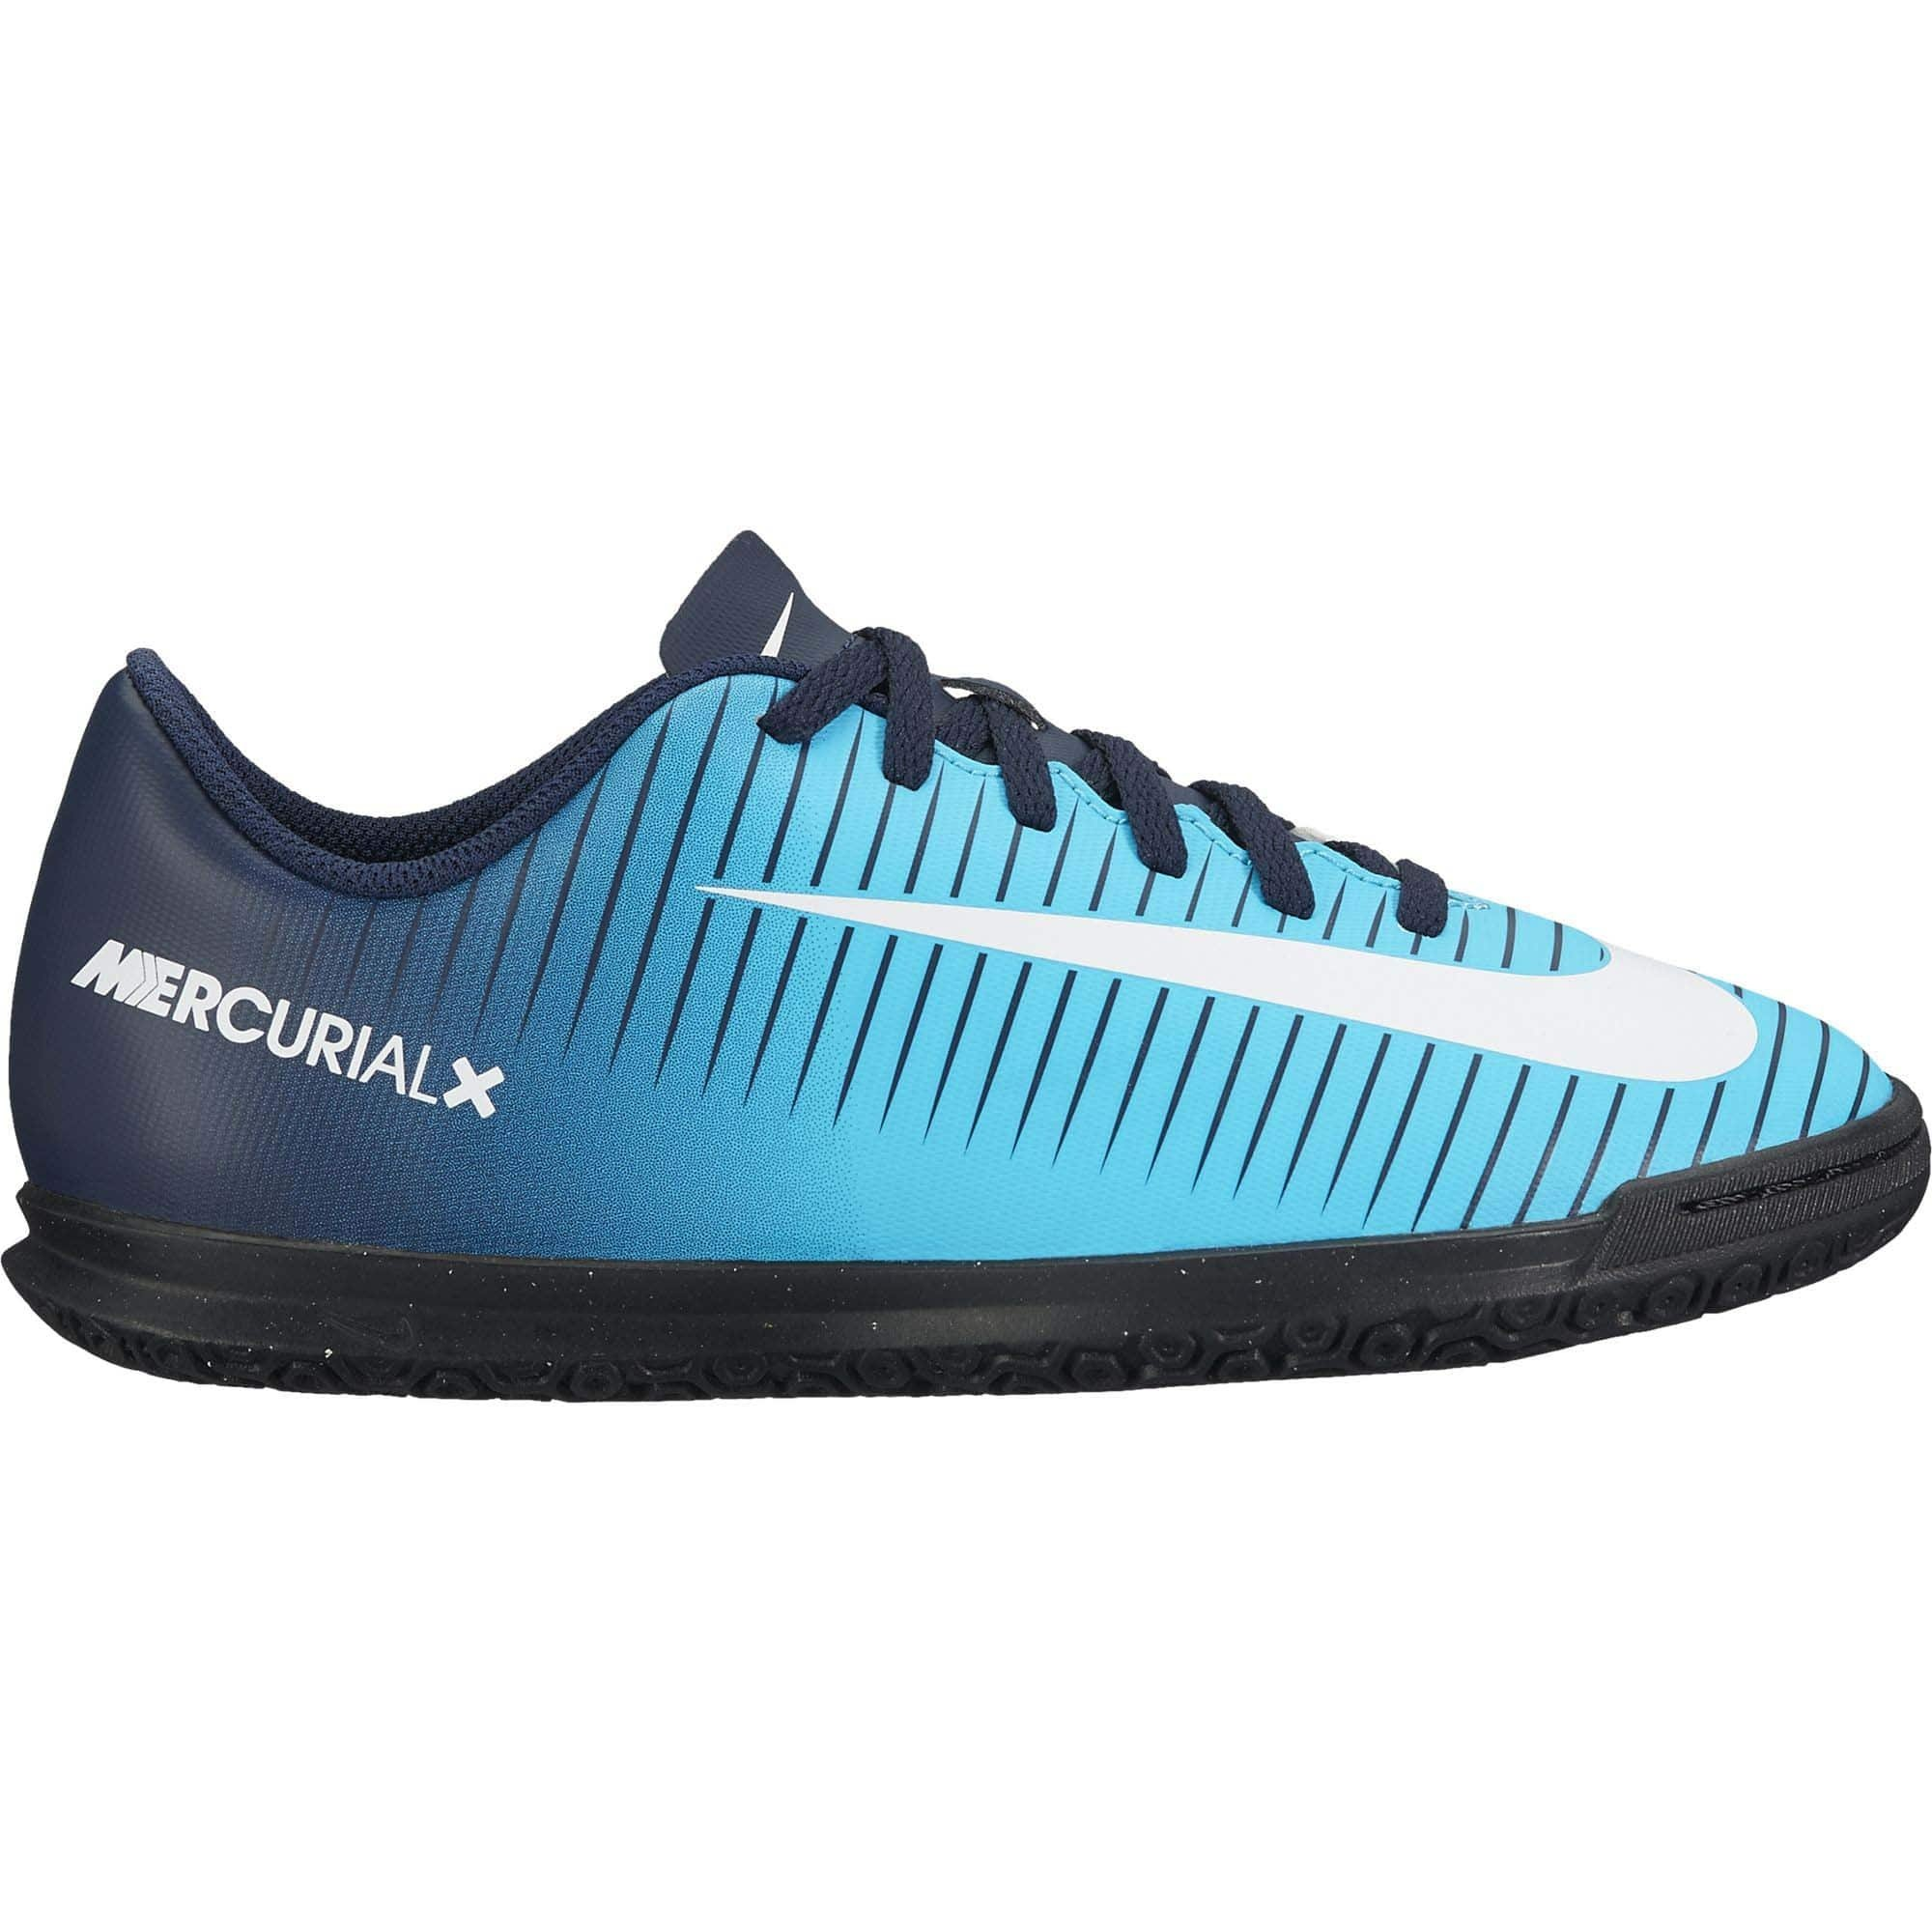 402da48a233 NIKE MERCURIALX VORTEX III IC JUNIOR CR7 831953-404 - Deportes Liverpool